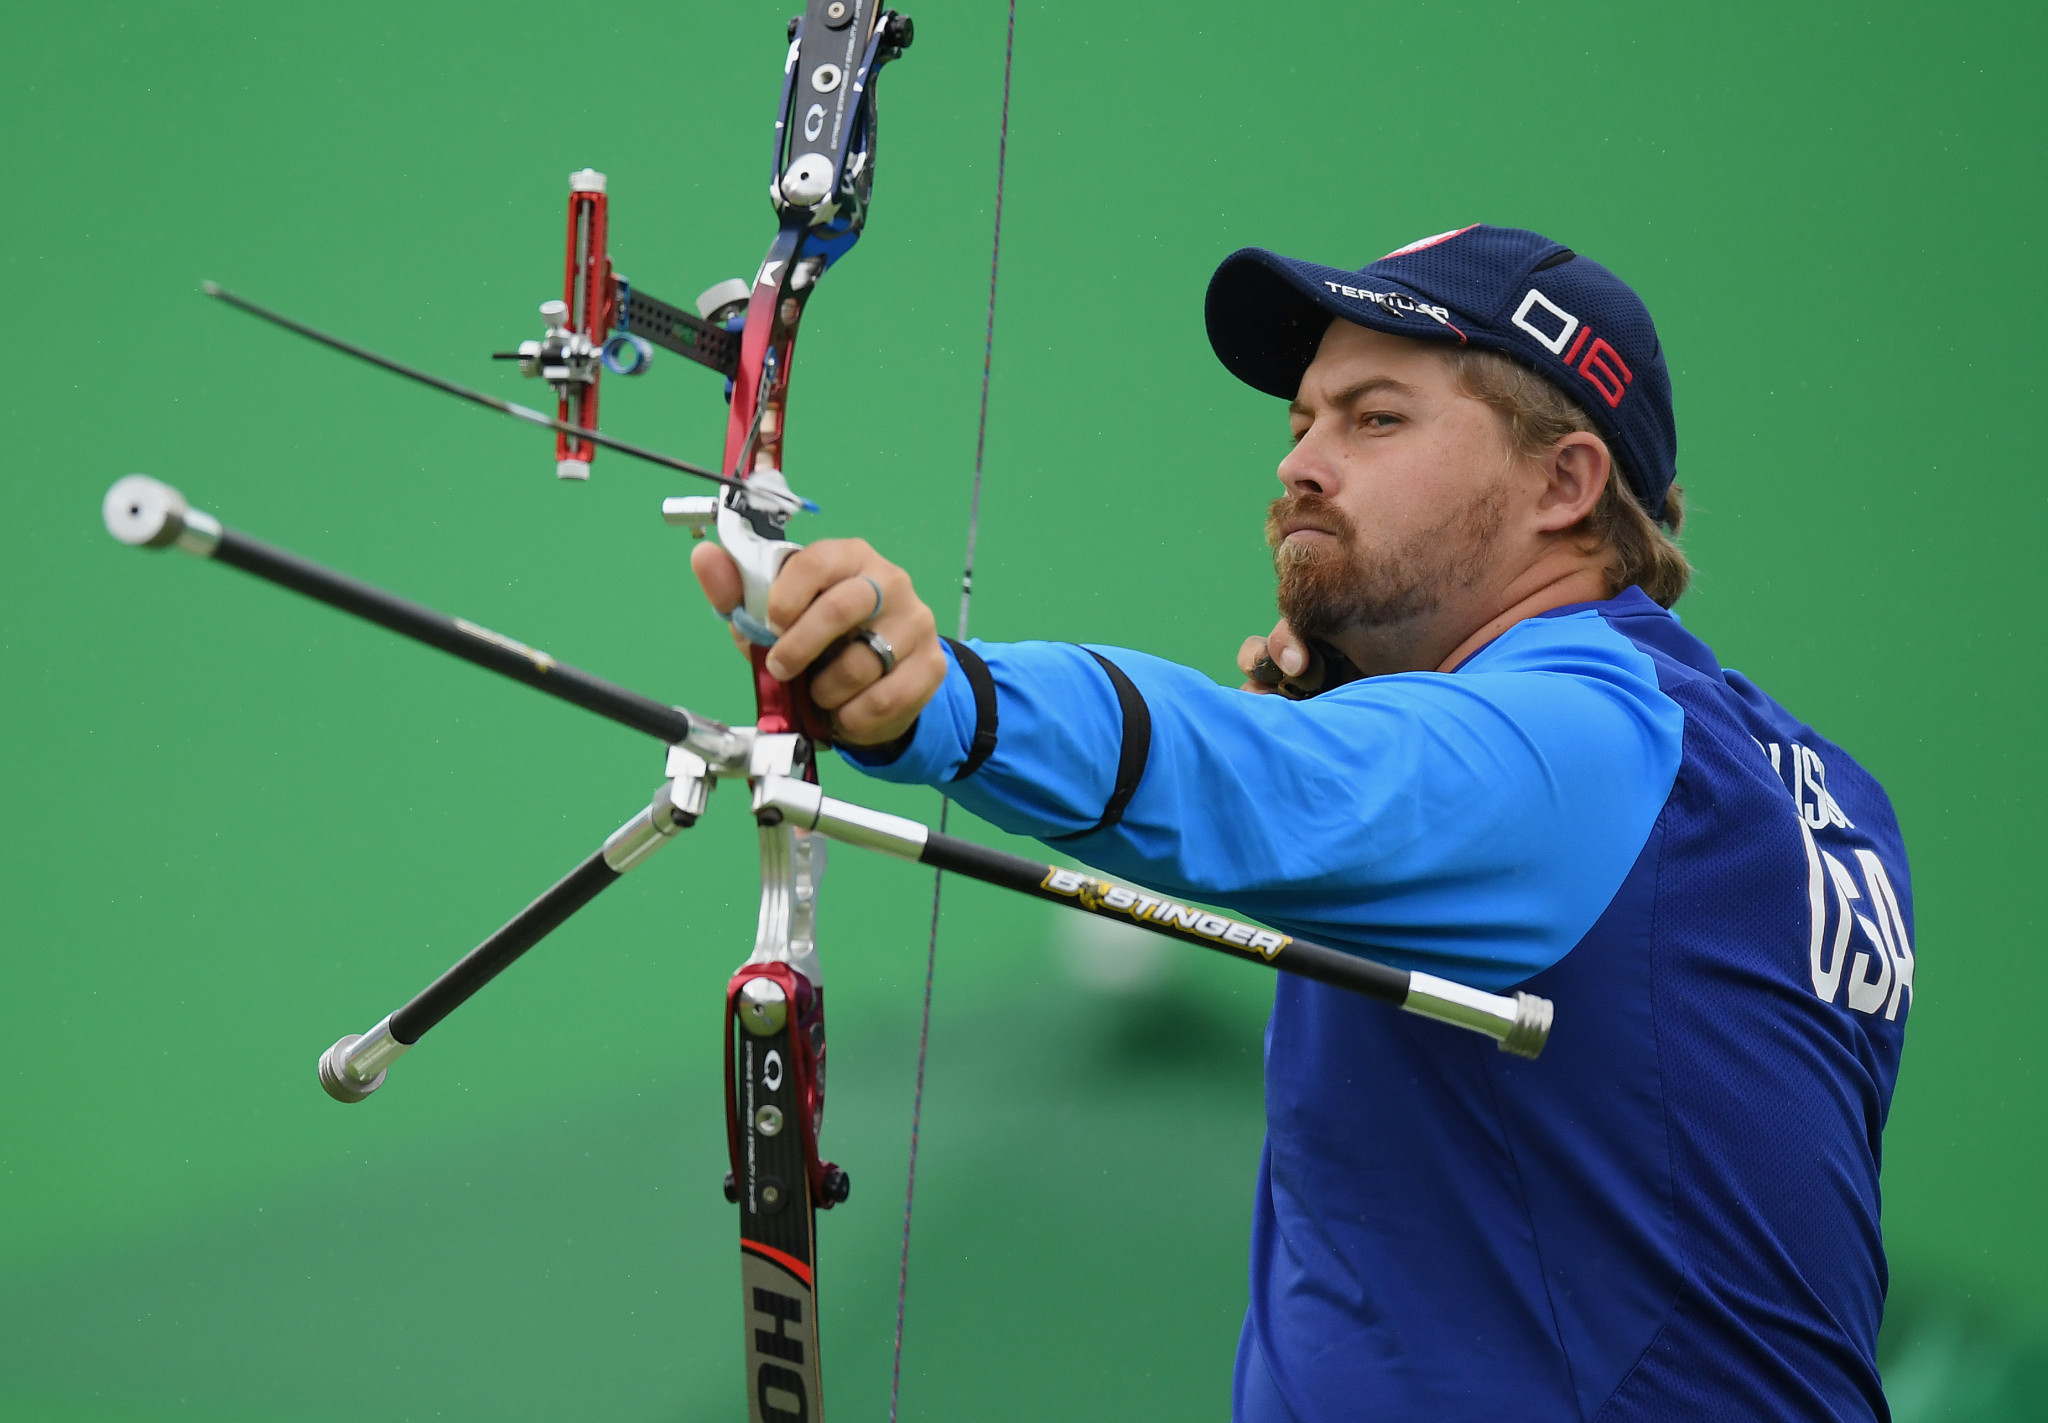 Ellison and Schloesser through to final four at Lausanne Archery World Cup